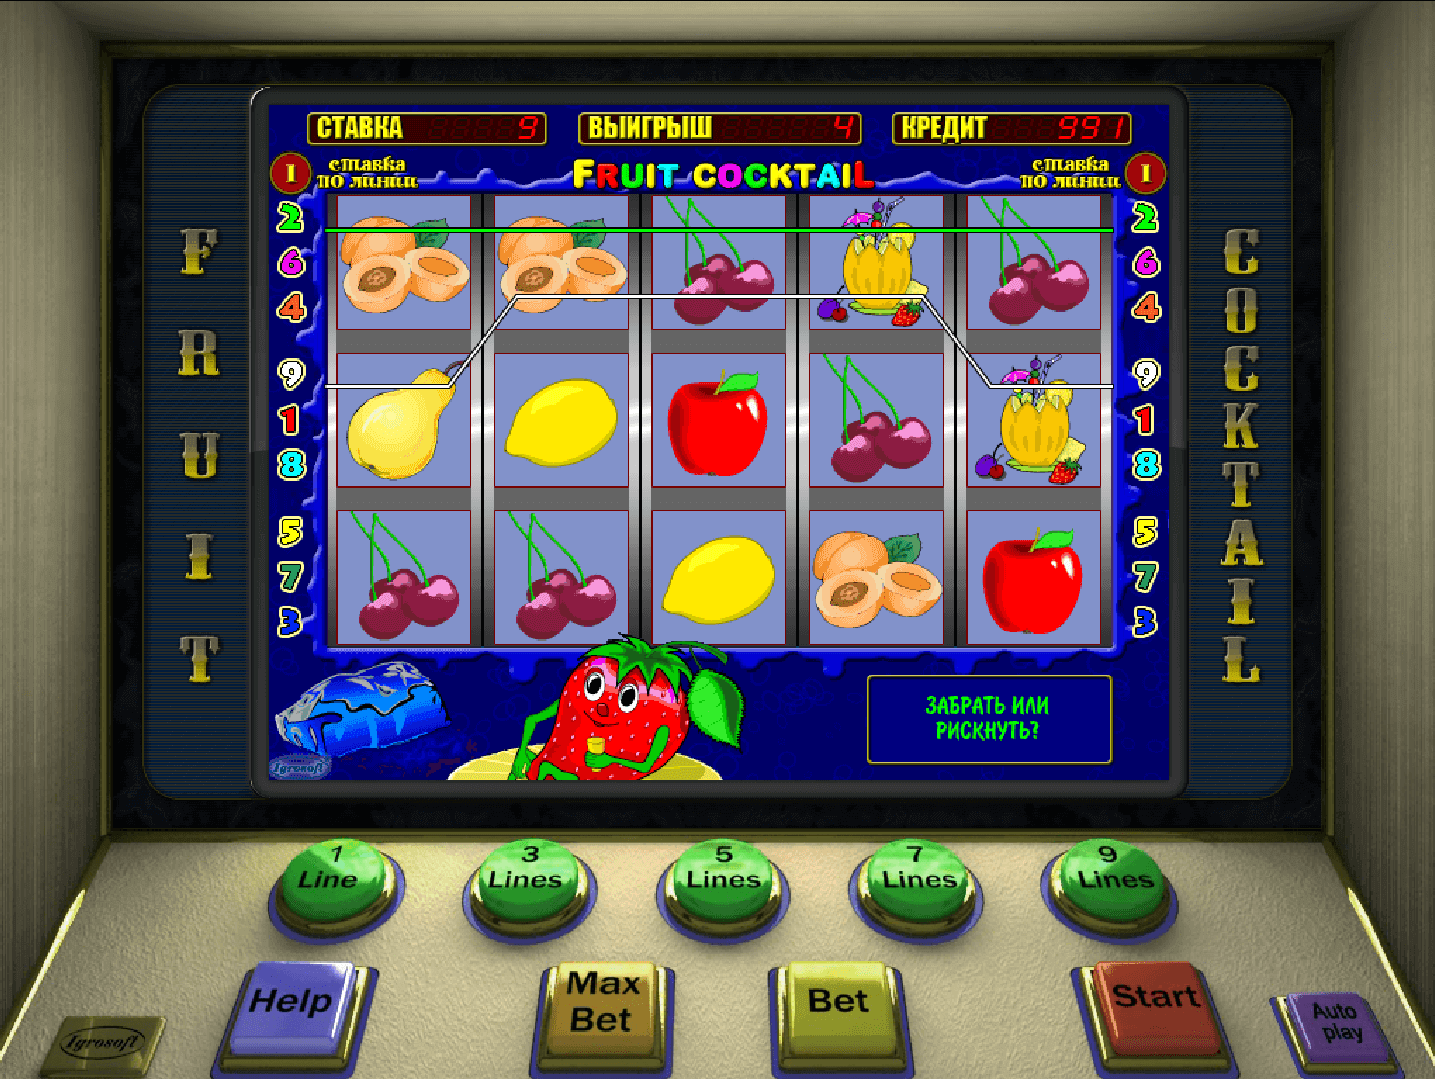 Casino jackpot. what games are played, how much do they gain